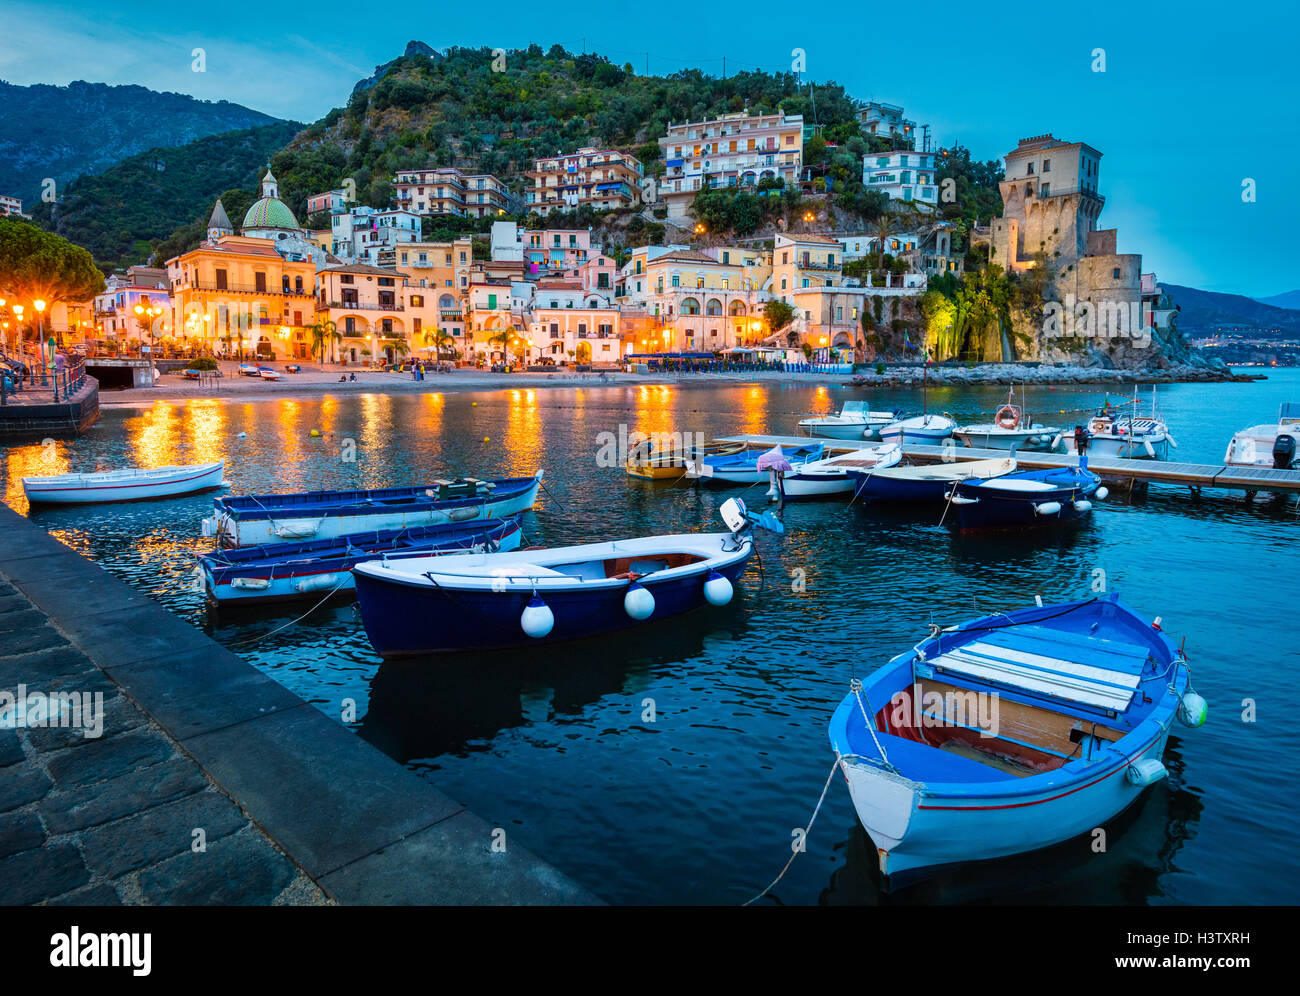 Cetara is a town and comune in the province of Salerno in the Campania region of south-western Italy. - Stock Image